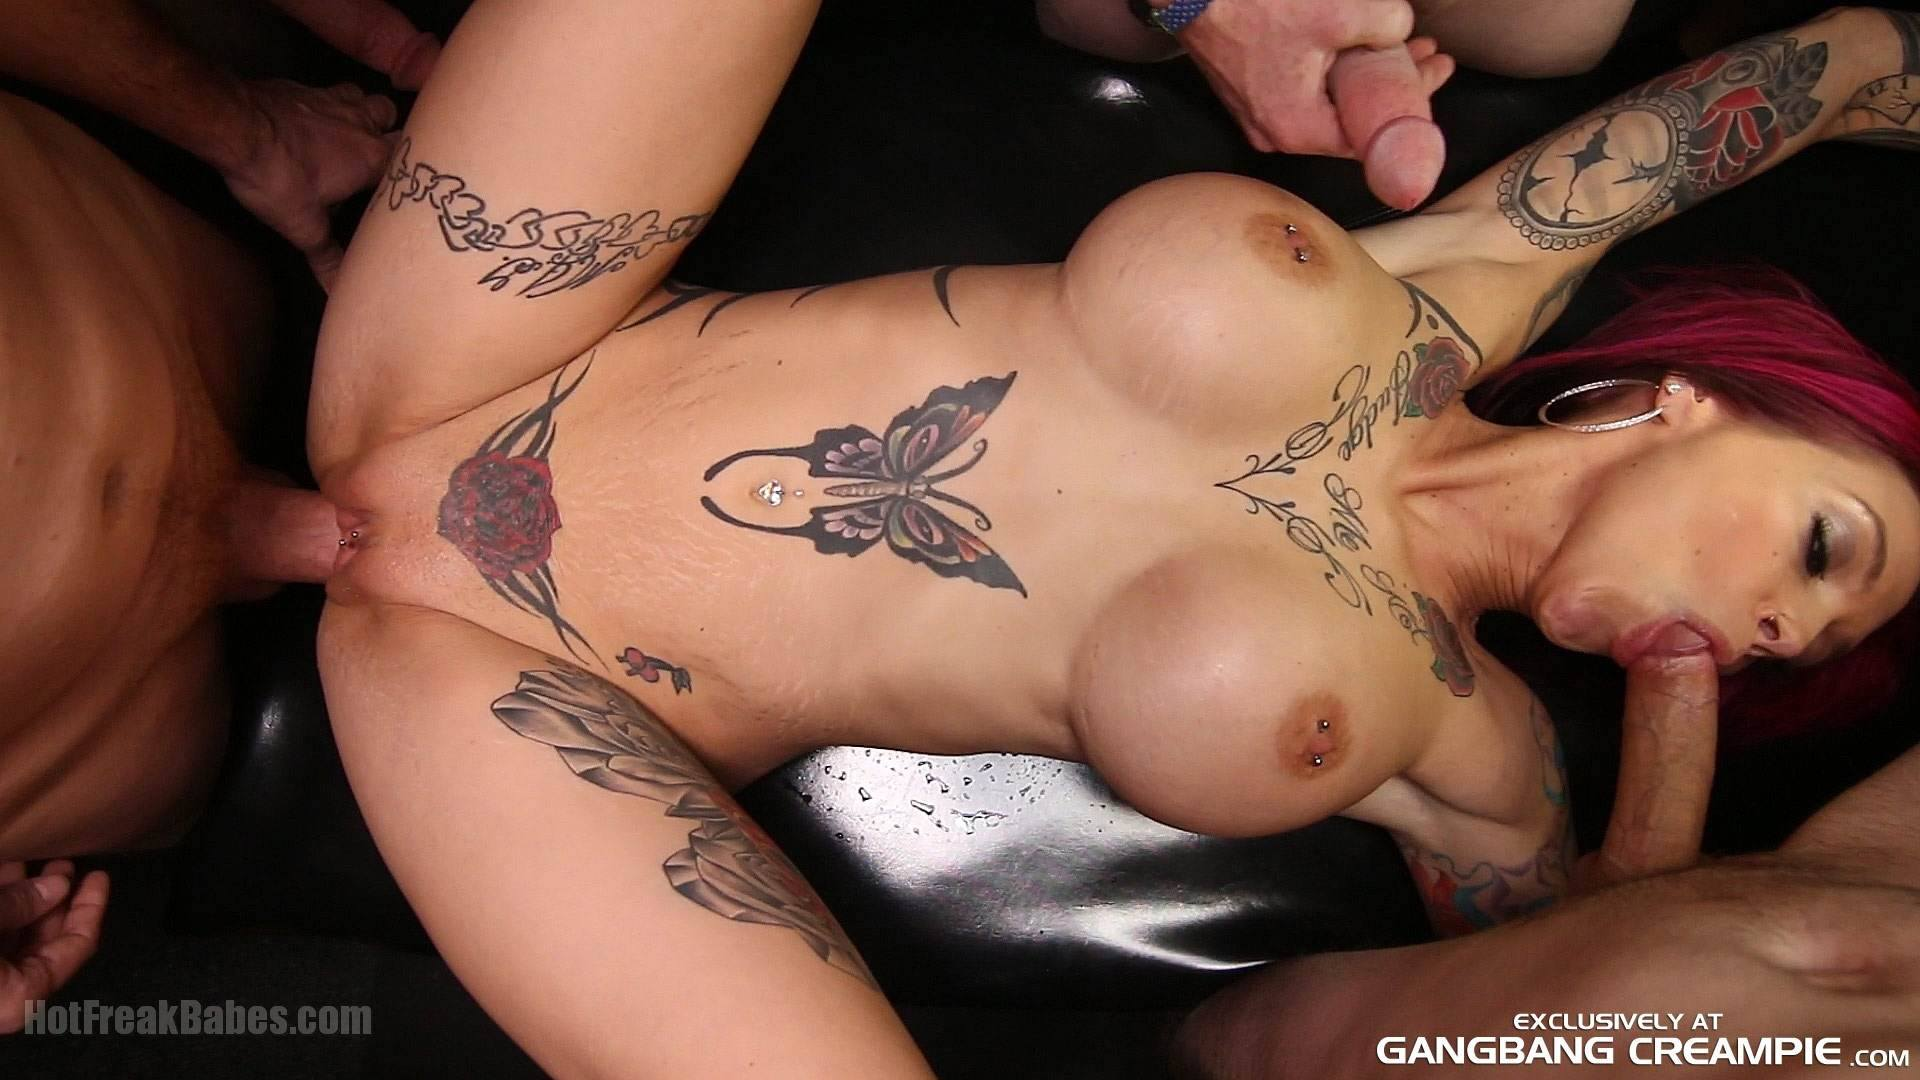 Anna Bell Peaks, busty, mature, tattoos, piercings, squirting, orgasms, cock sucking, Gangbang Creampie, Gangbang, Creampie, moresome, pornstars, The Ultimate Gangbang and Creampie site